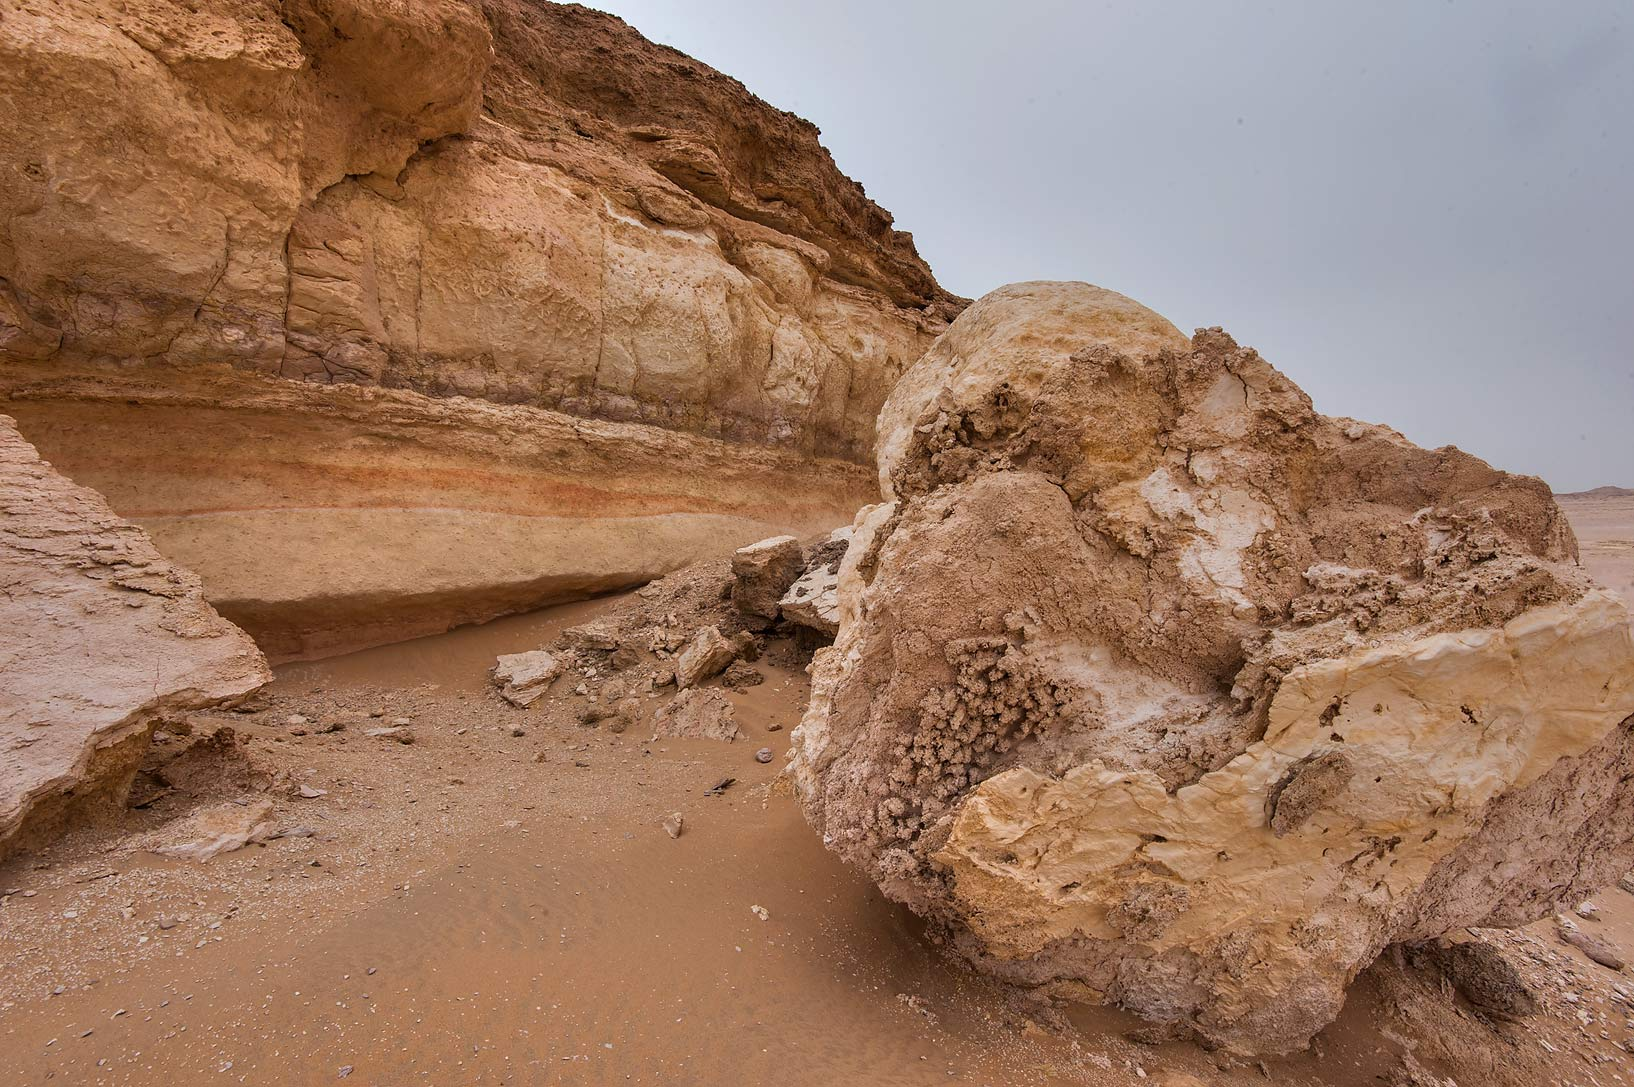 Limestone cliffs in area of Nakhsh Mountain near Salwa Rd. in southern Qatar